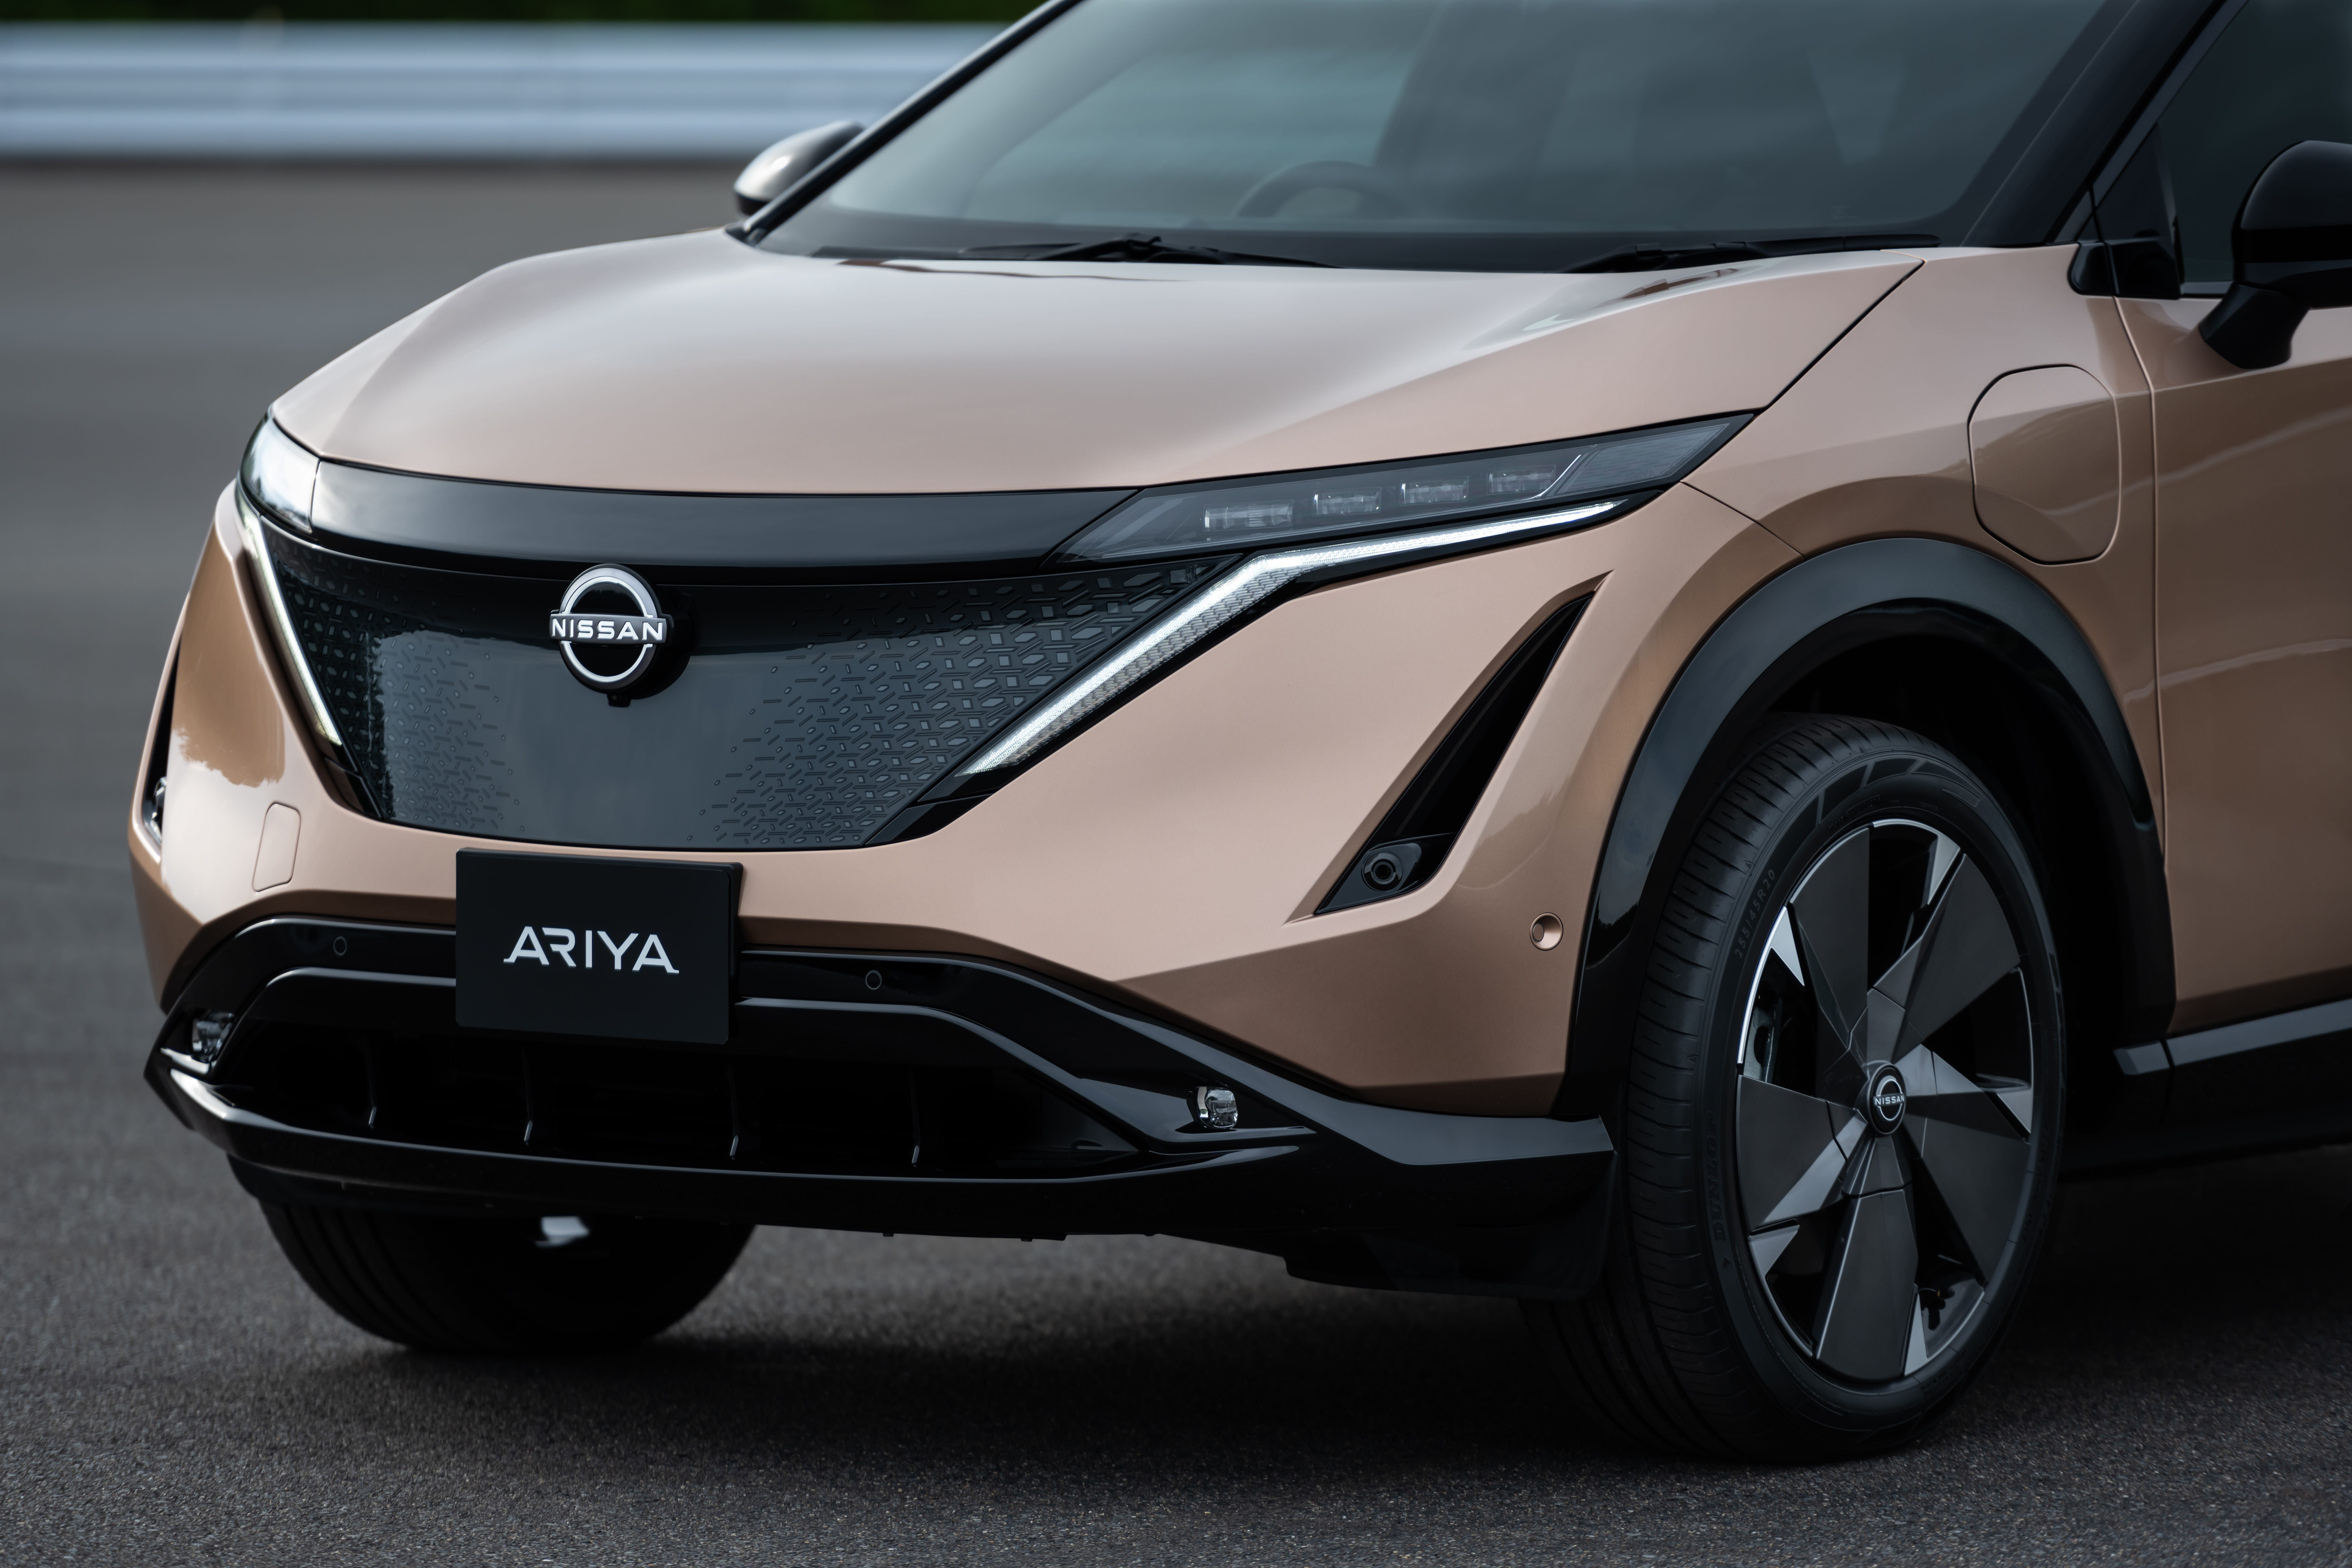 Nissan reveals $40,000 electric SUV